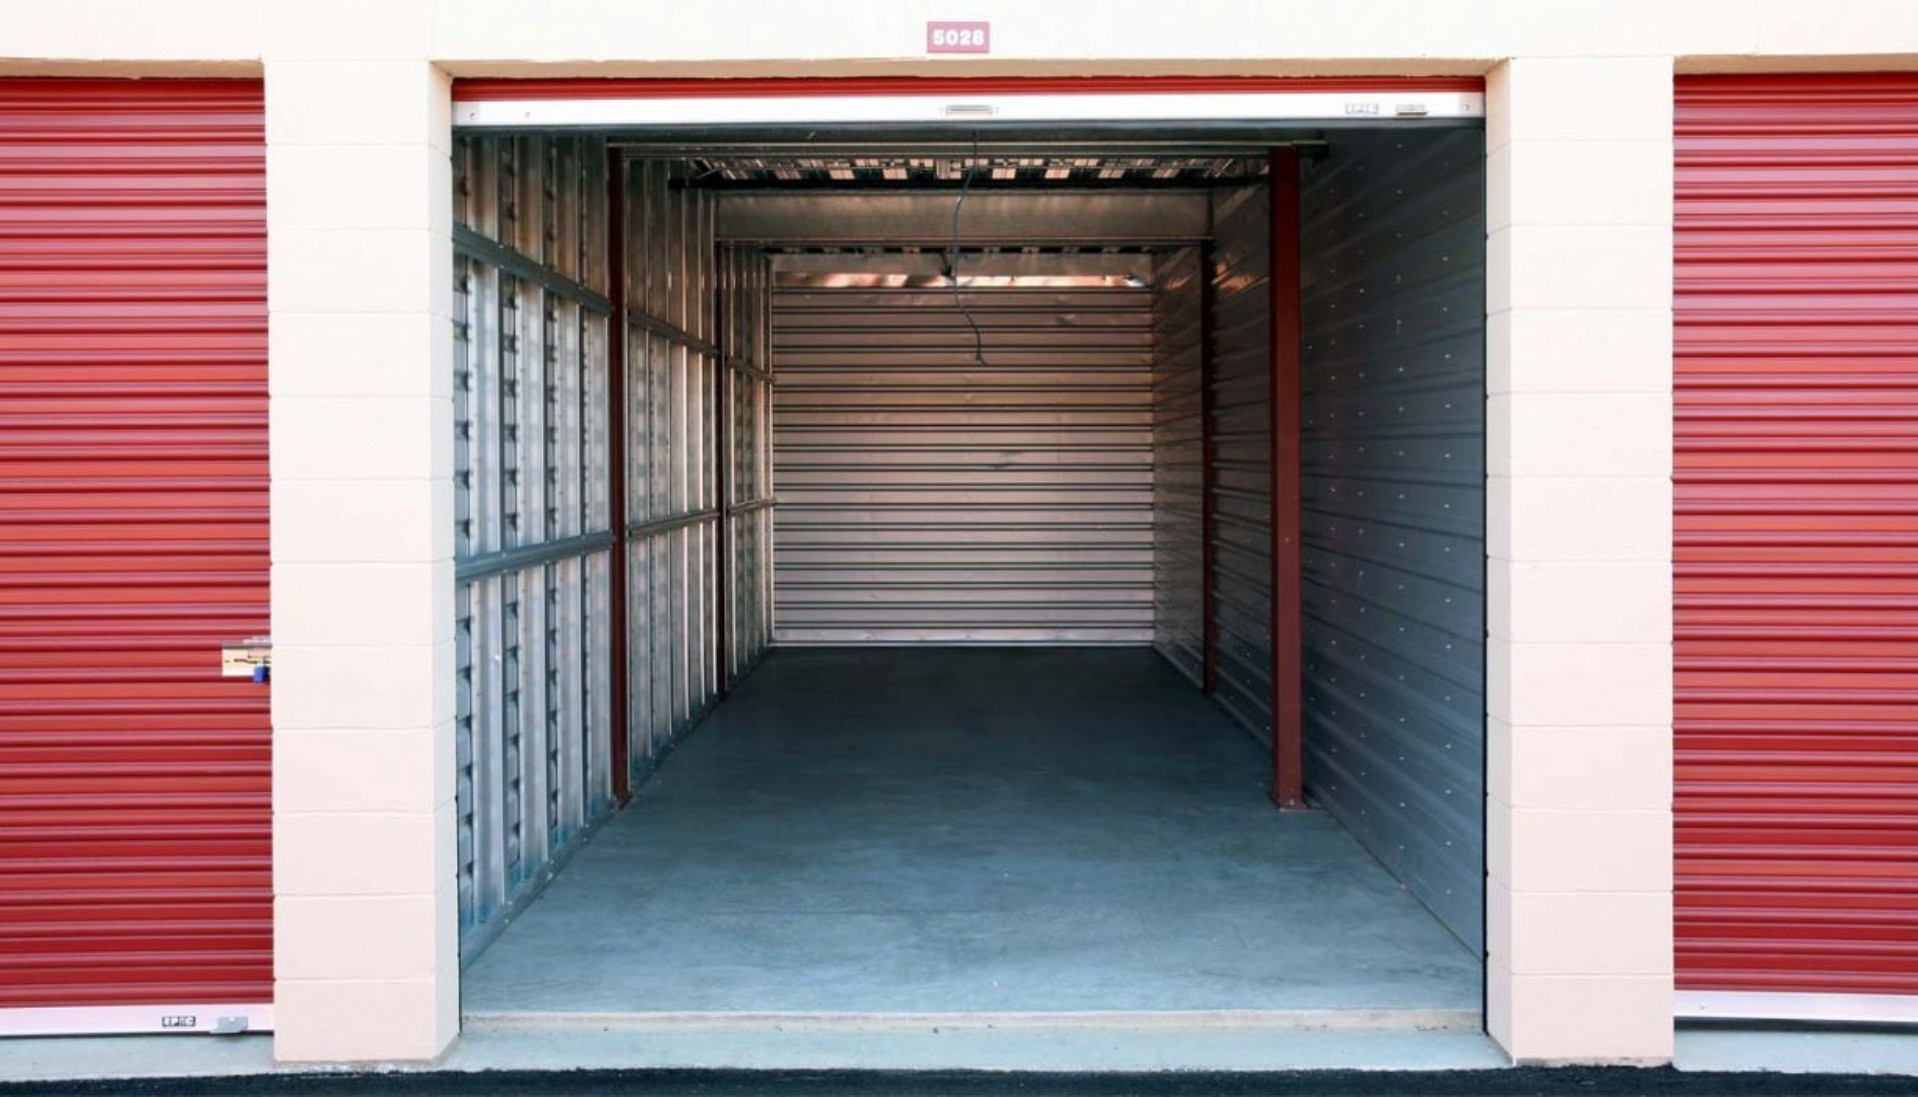 Large drive up storage unit with door rolled up and aluminum interior walls